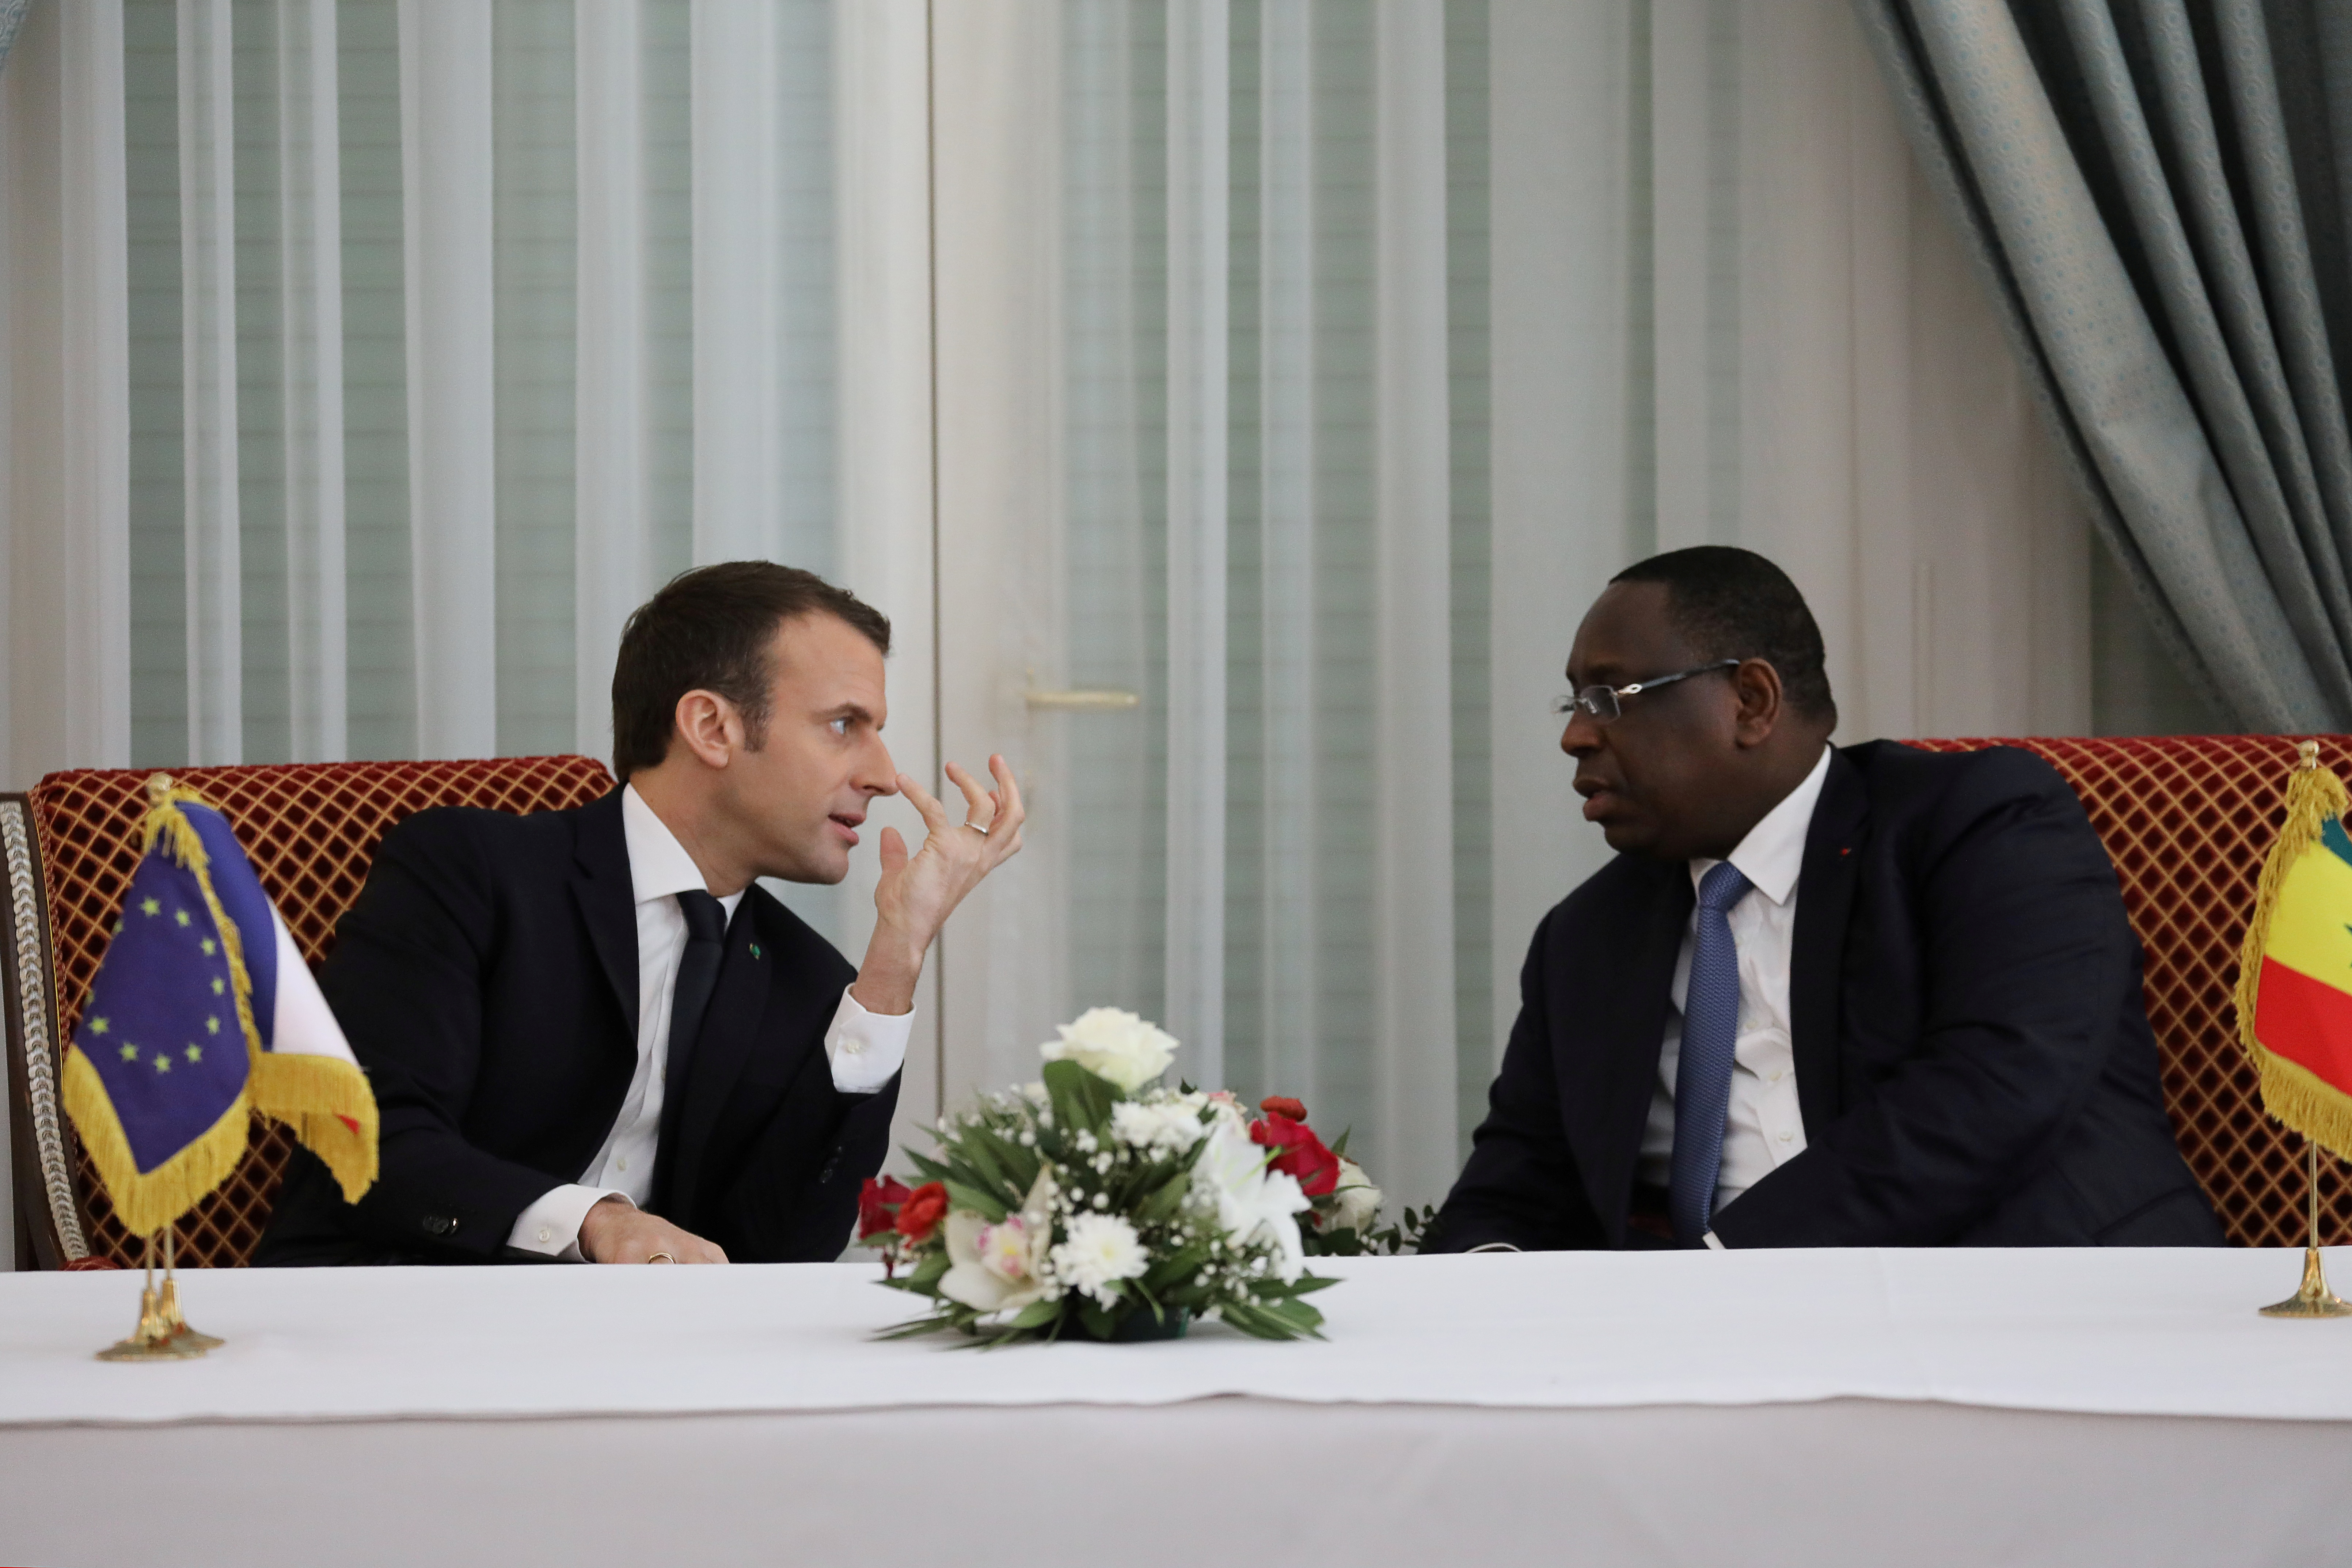 Senegalese President Macky Sall and French President Emmanuel Macron talk during an agreement signing ceremony at the presidential palace in Dakar, Senegal, February 2, 2018.      REUTERS/Ludovic Marin/Pool - RC1282C70620